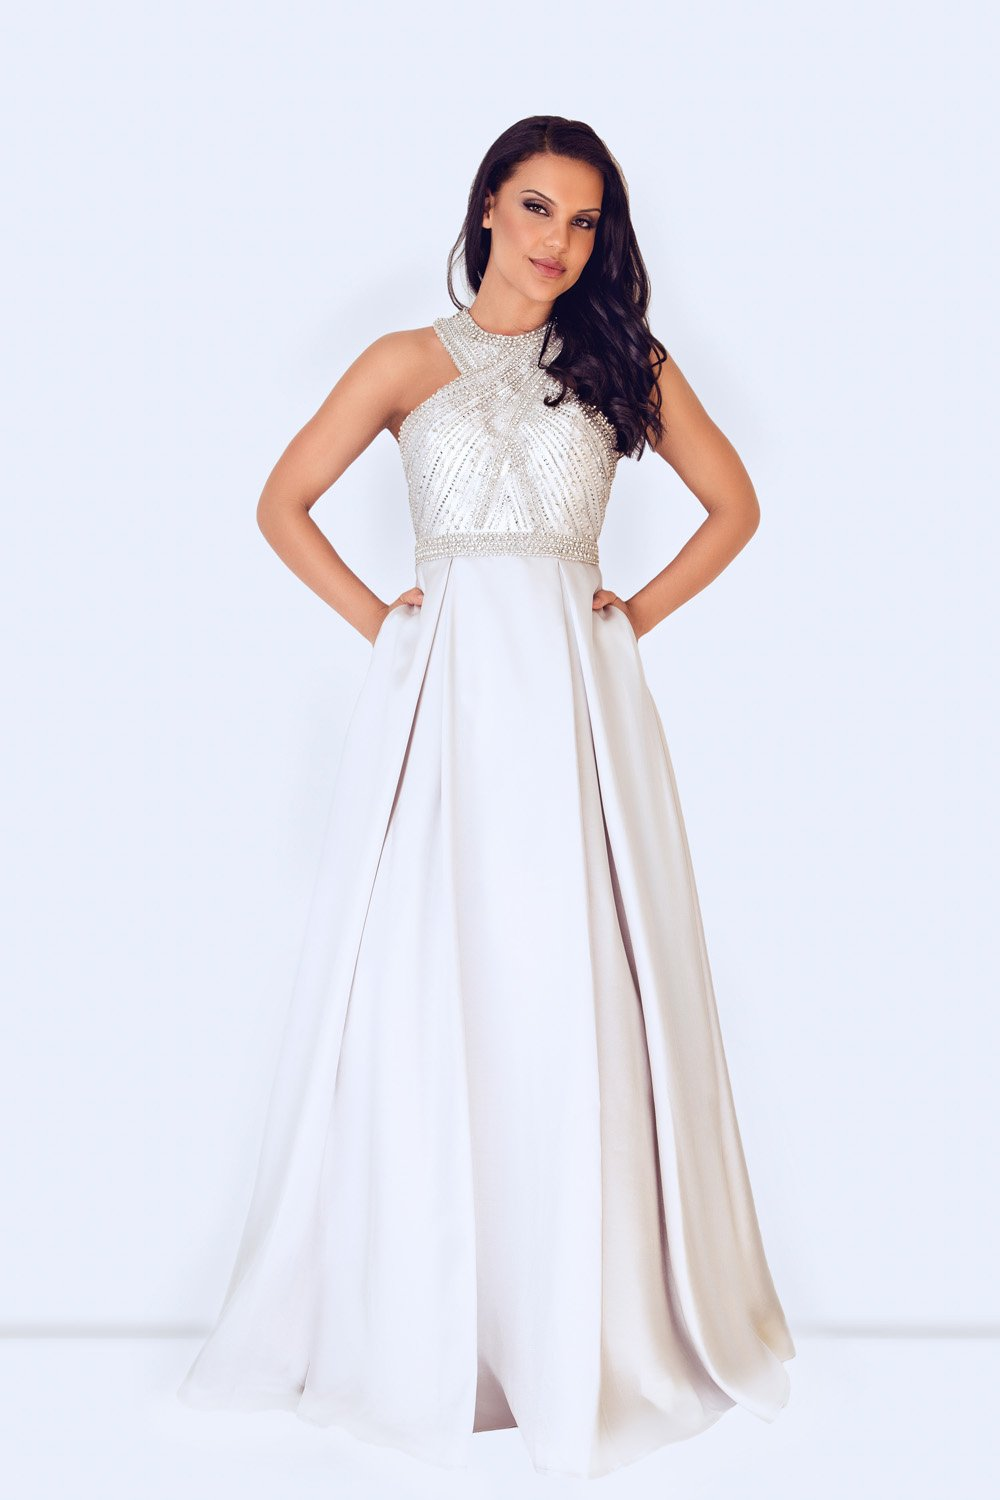 Sisika Silver Long Evening Gown - Gissings Boutique